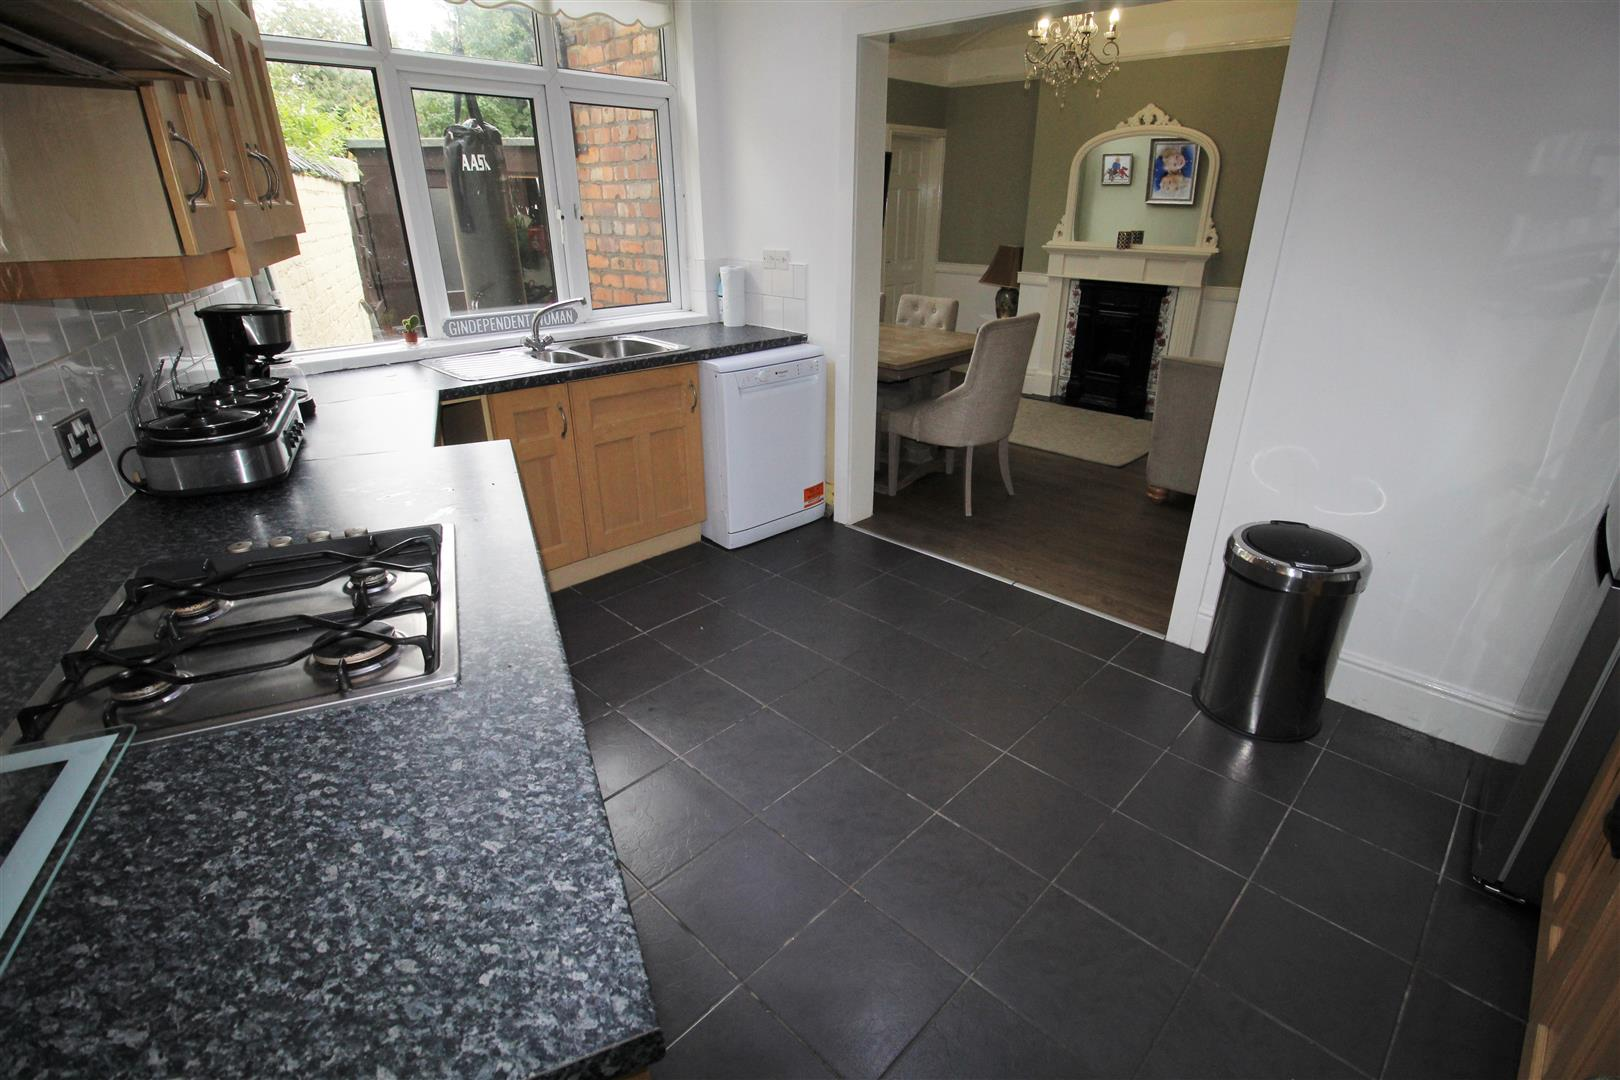 3 Bedrooms, House - End Terrace, Kitchener Drive, Liverpool